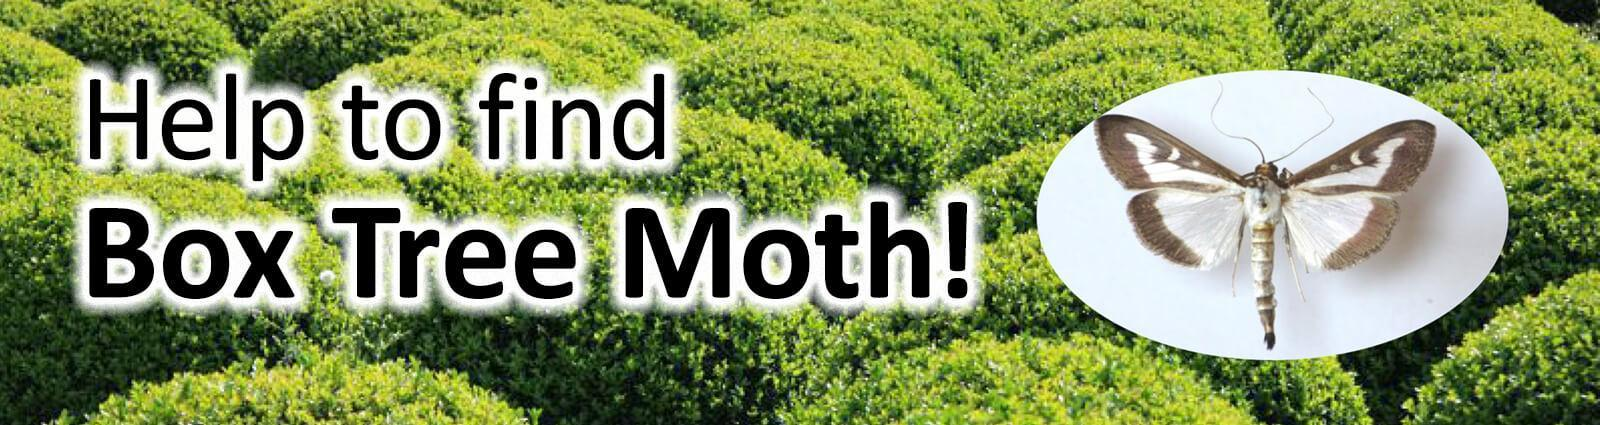 Landscape Ontario leads program to control the spread of box tree moth